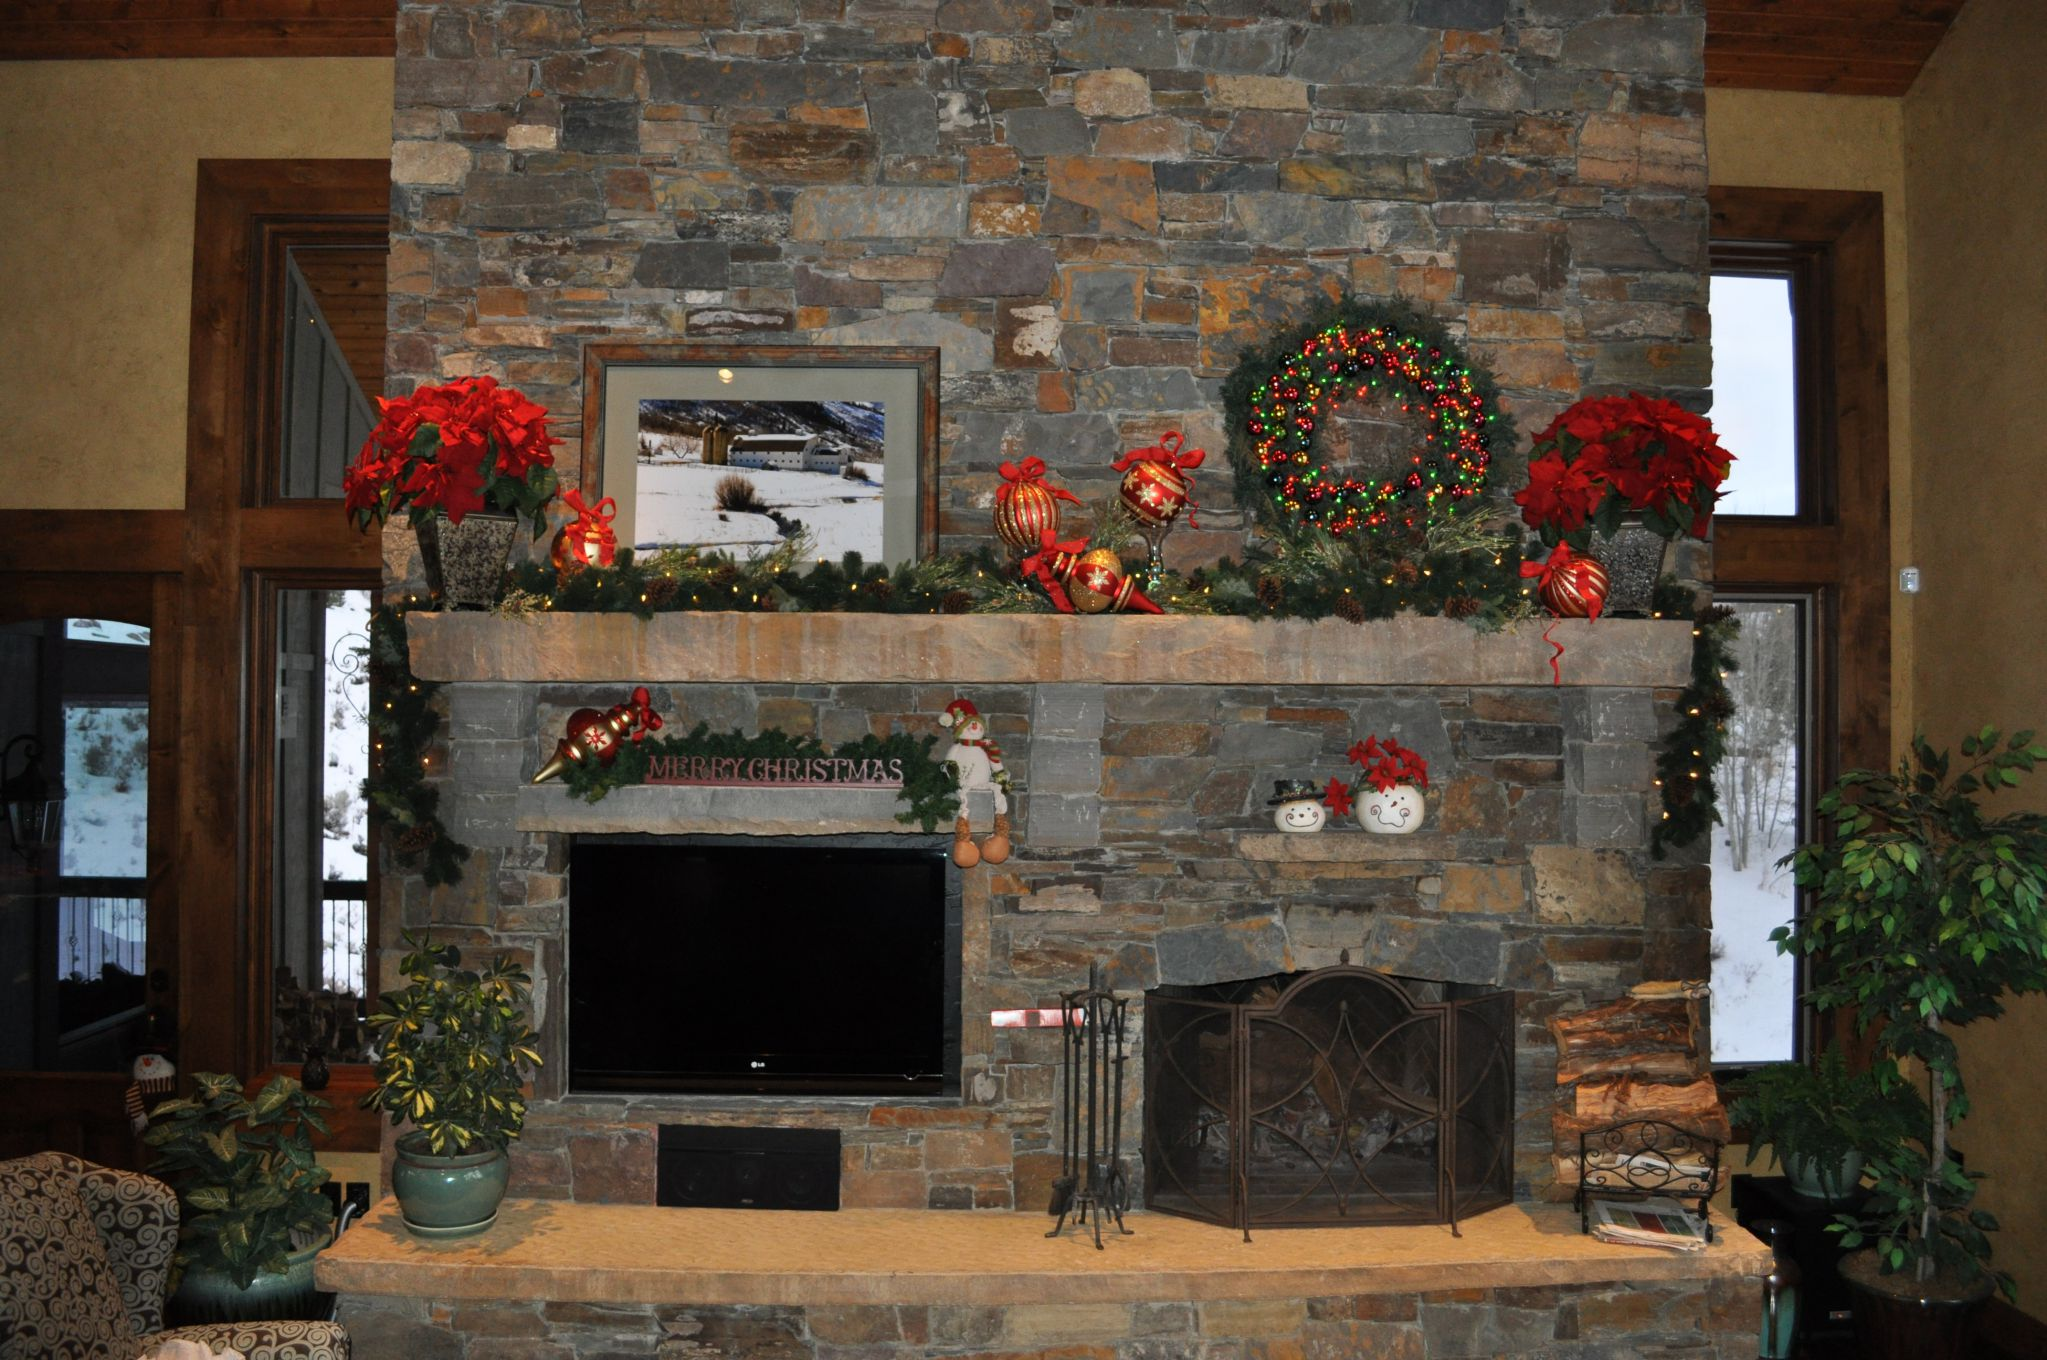 Marvelous Interior Room With Natural Stone Fireplace Ideas also Christmast Decor